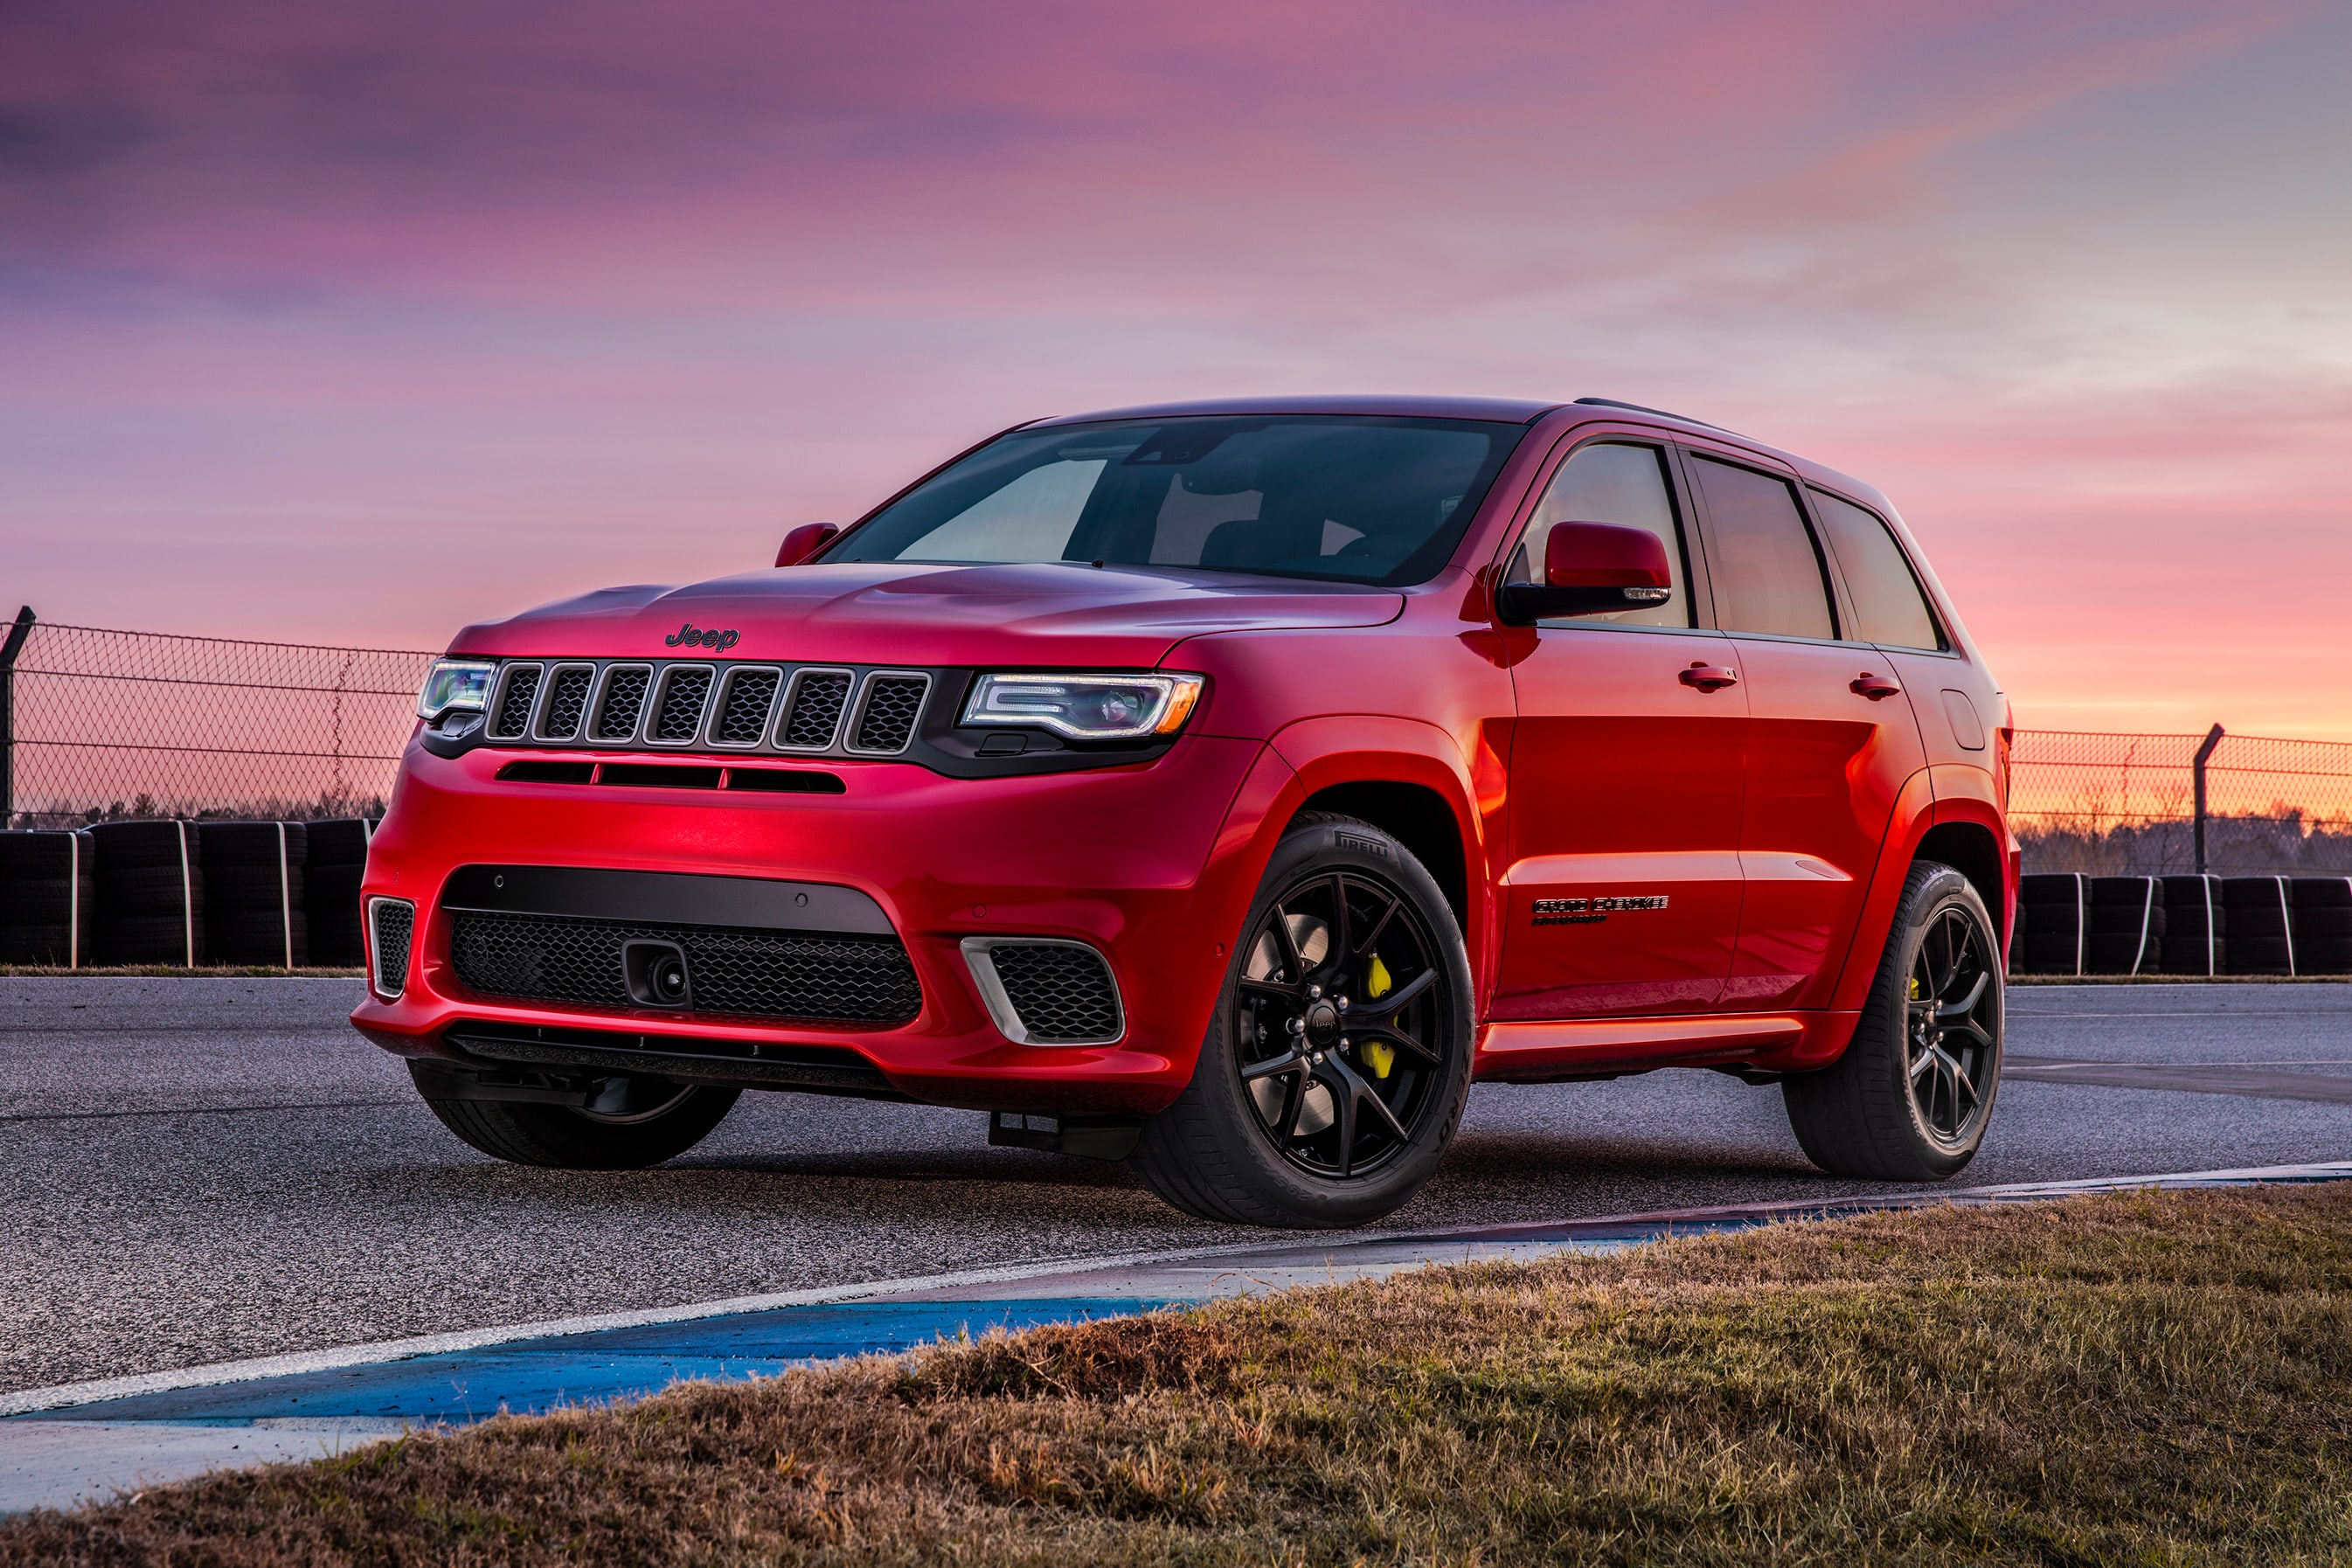 Jeep Grand Cherokee Trackhawk 2018 Price And Specification Confirmed Car News Carsguide